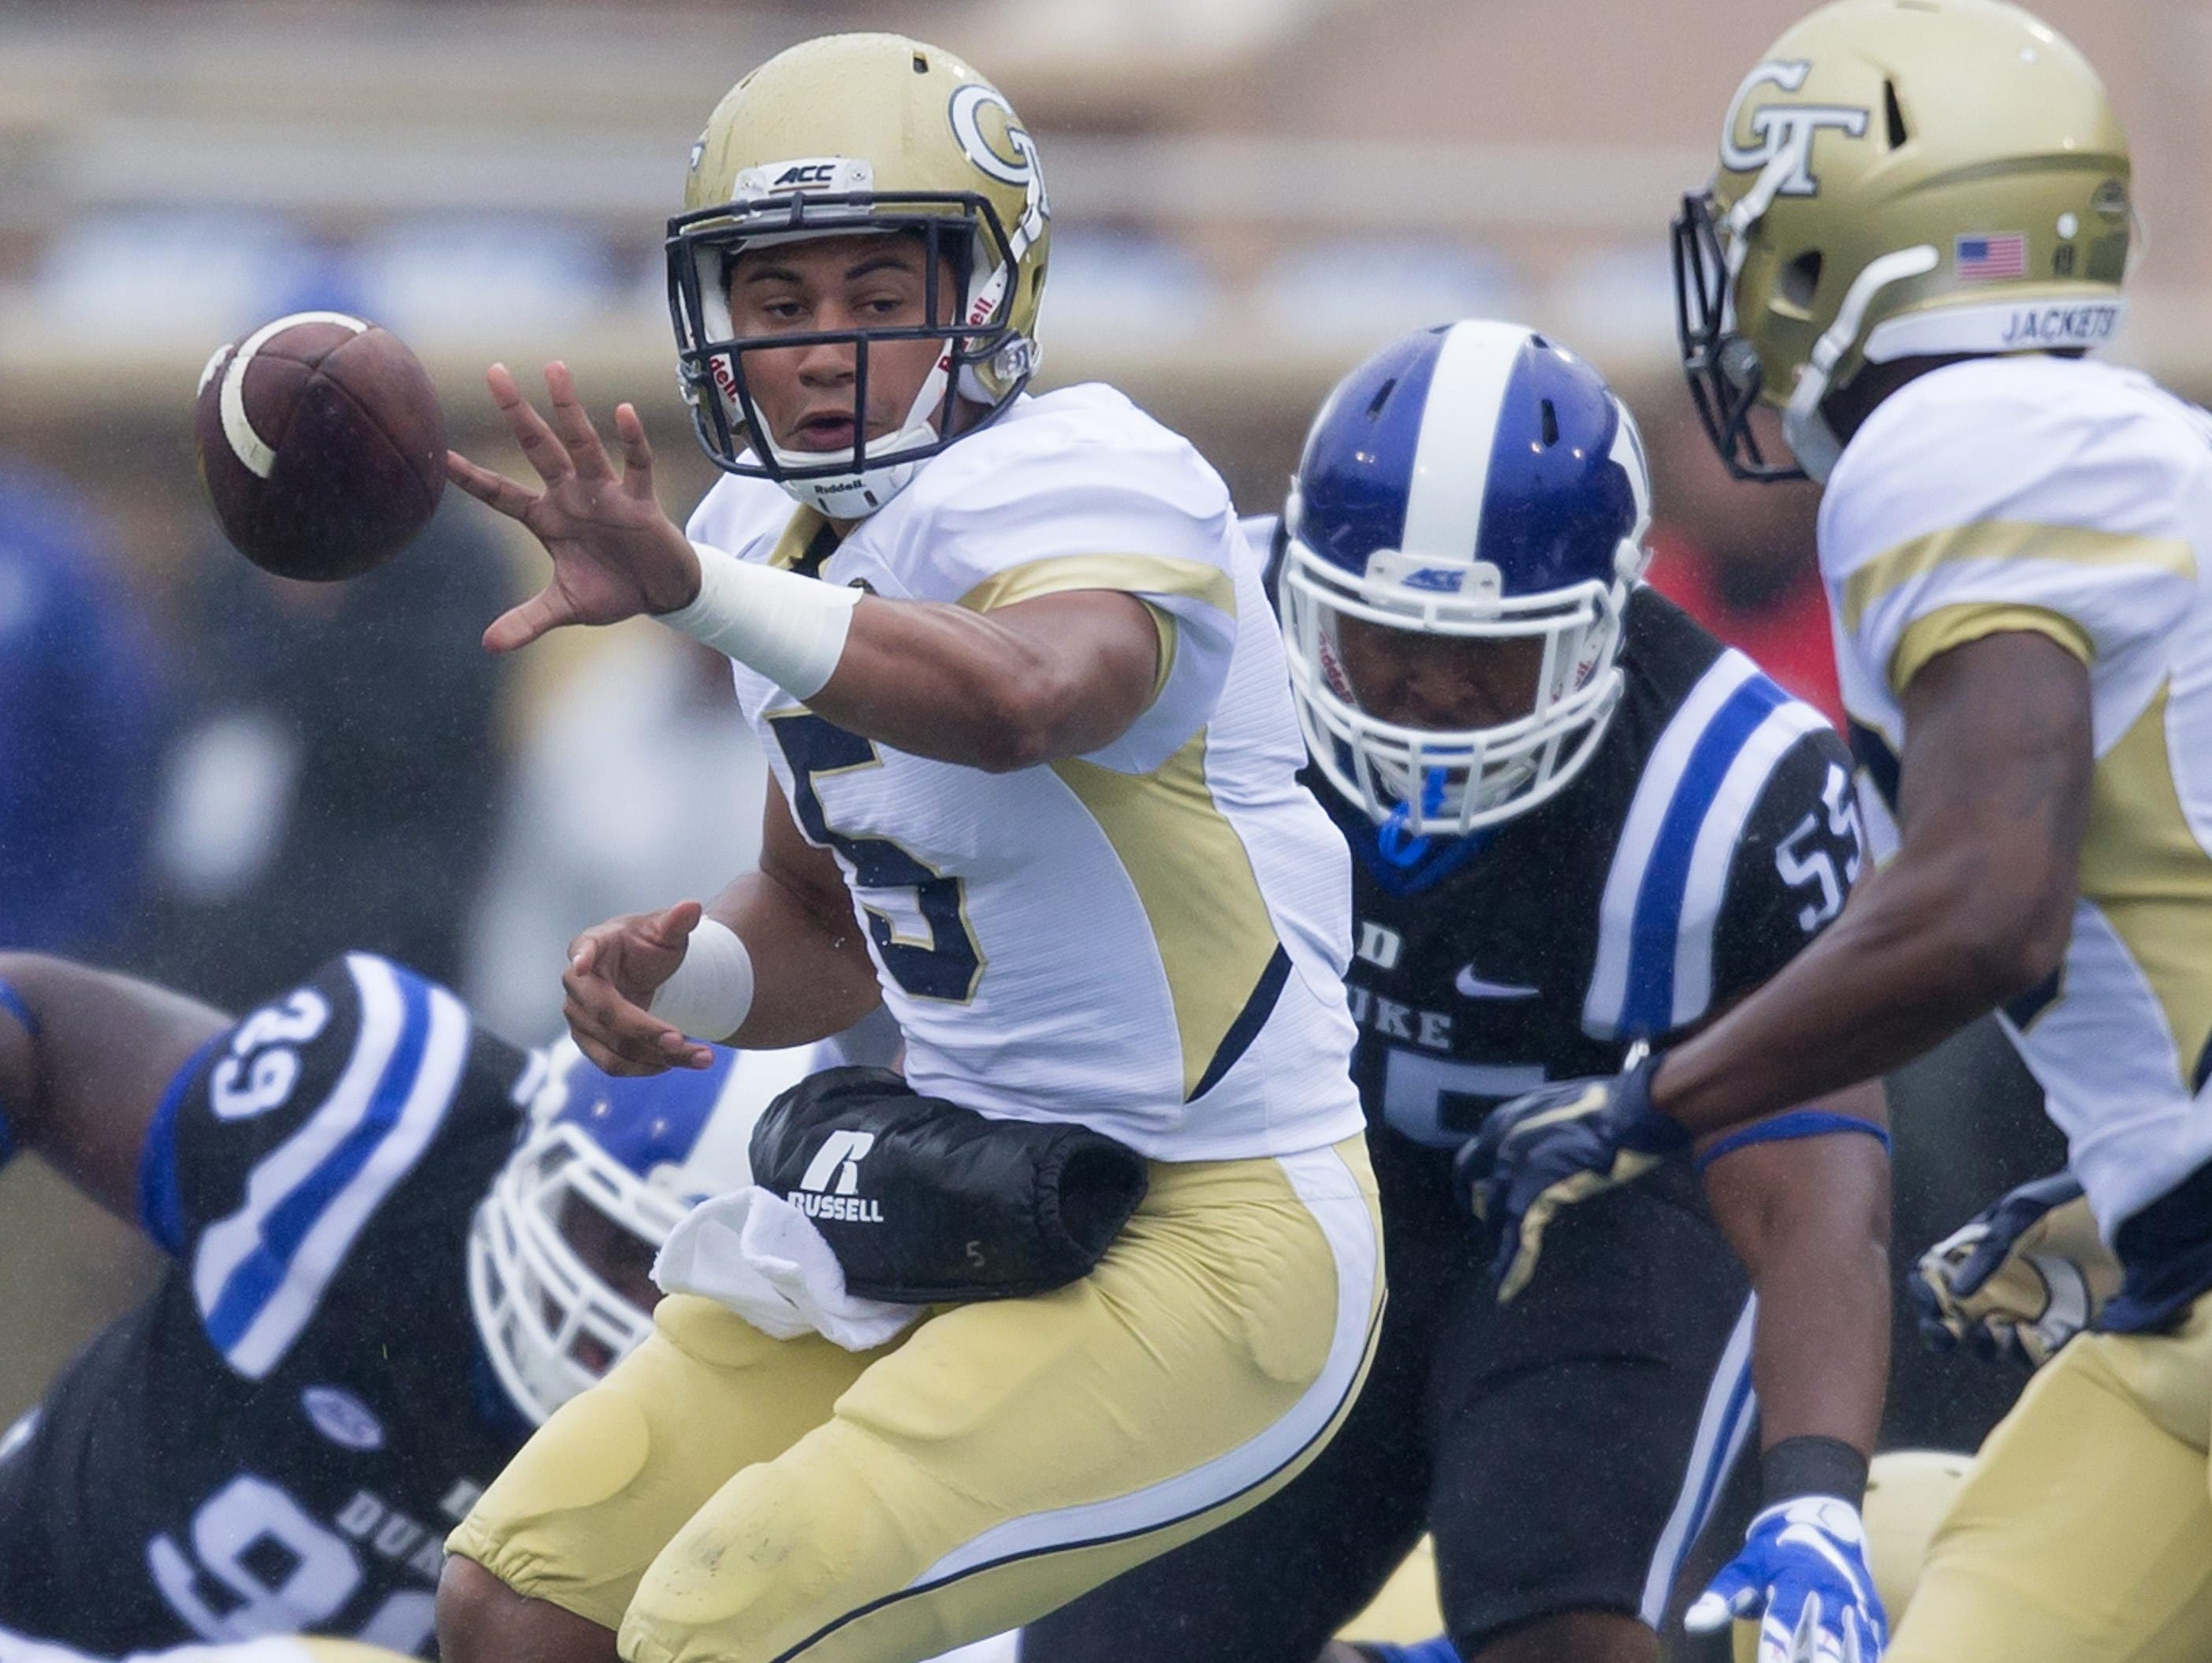 Georgia Tech quarterback Justin Thomas pitches to Clinton Lynch during the first half of an NCAA college football game, in Durham, N.C., Saturday, Sept. 26, 2015. (AP Photo/Rob Brown)